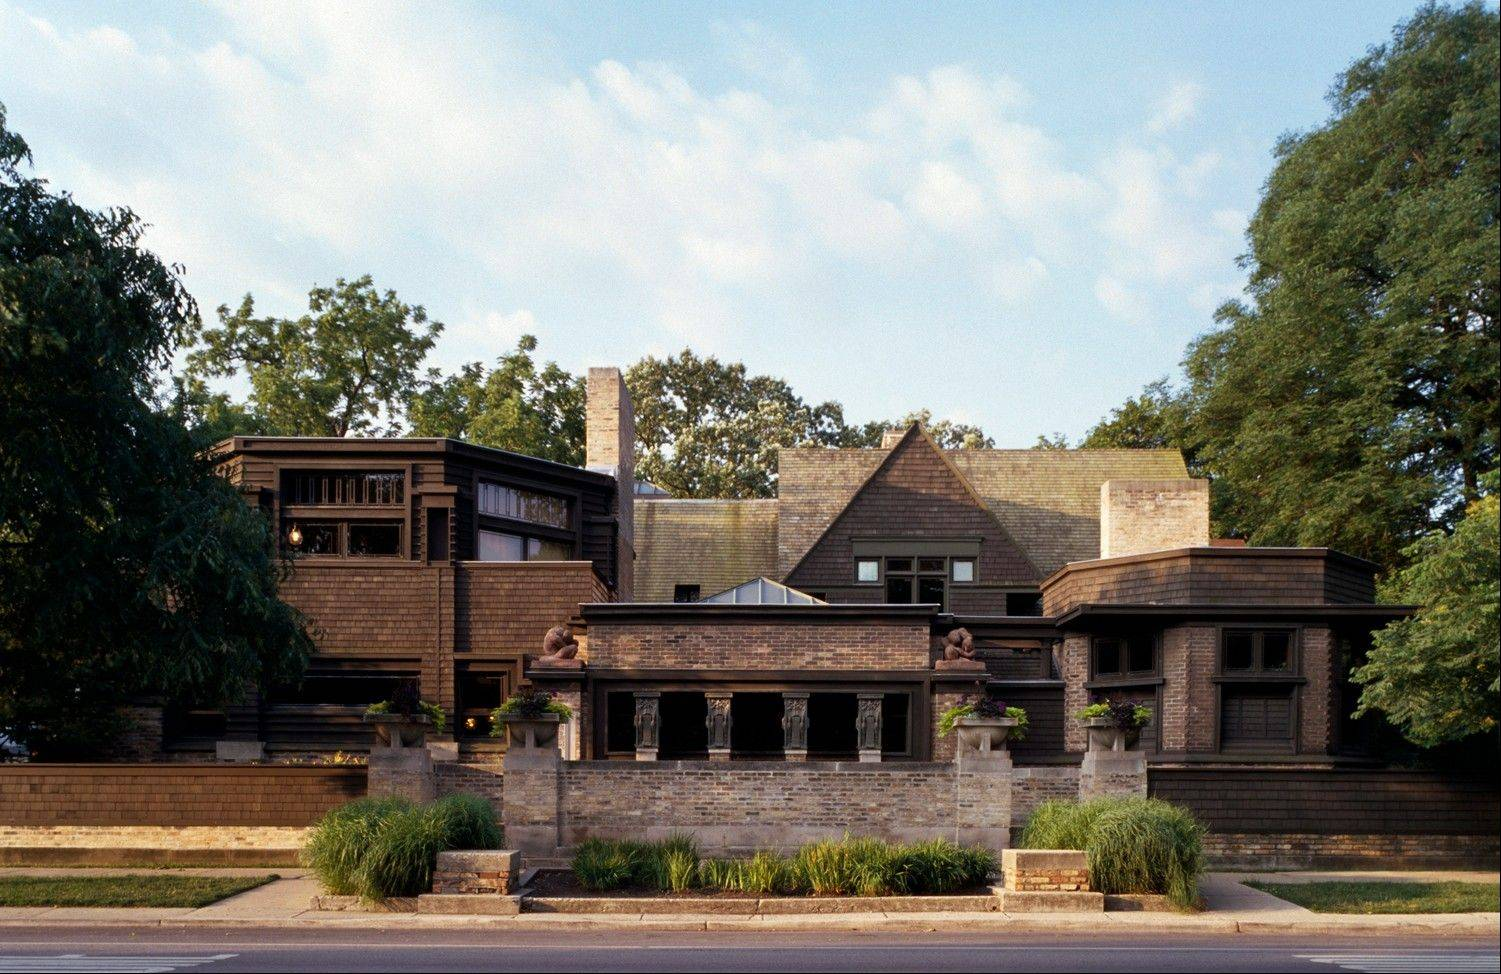 The exterior of the studio side of the Frank Lloyd Wright Home and Studio, which was built in 1889. The studio side of the building accessed Wright's offices and drafting studio.